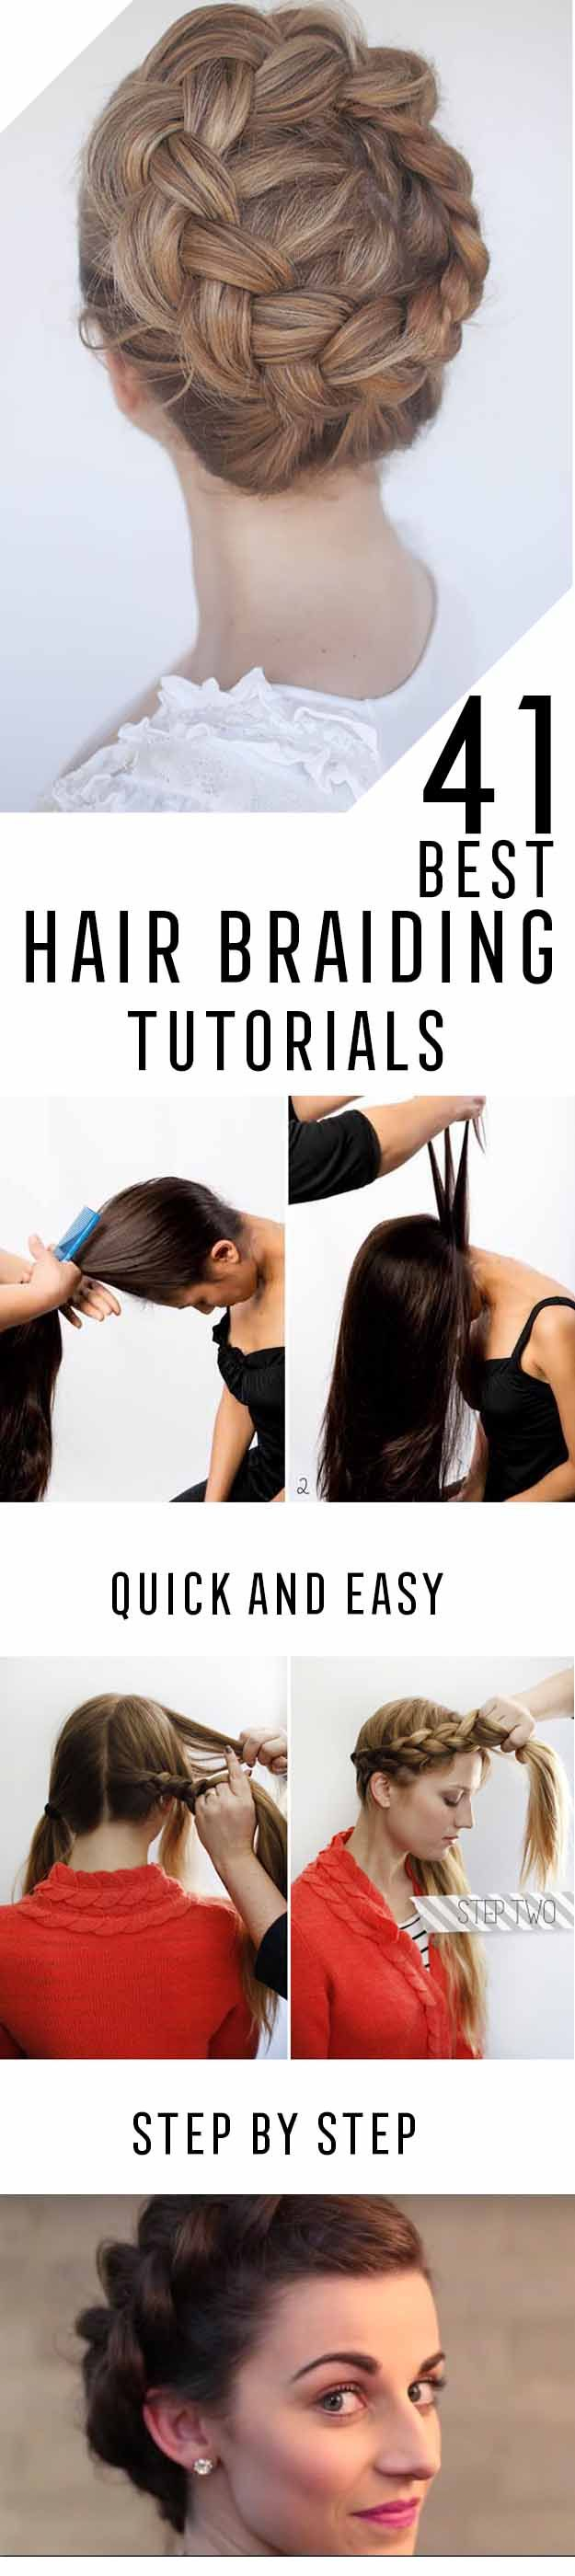 Best Hair Braiding Tutorials - Step By Step Easy Hair Braiding Tutorials For Long Hair, Pont Tails, Medium Hair, Short Hair, and For Women and Kids. Videos and Ideas for Dutch Braids, Messy Buns, Fishtail Braids, French Braids, Black Hair, Blondes, And Even For Headbands - http://thegoddess.com/best-hair-braiding-tutorials